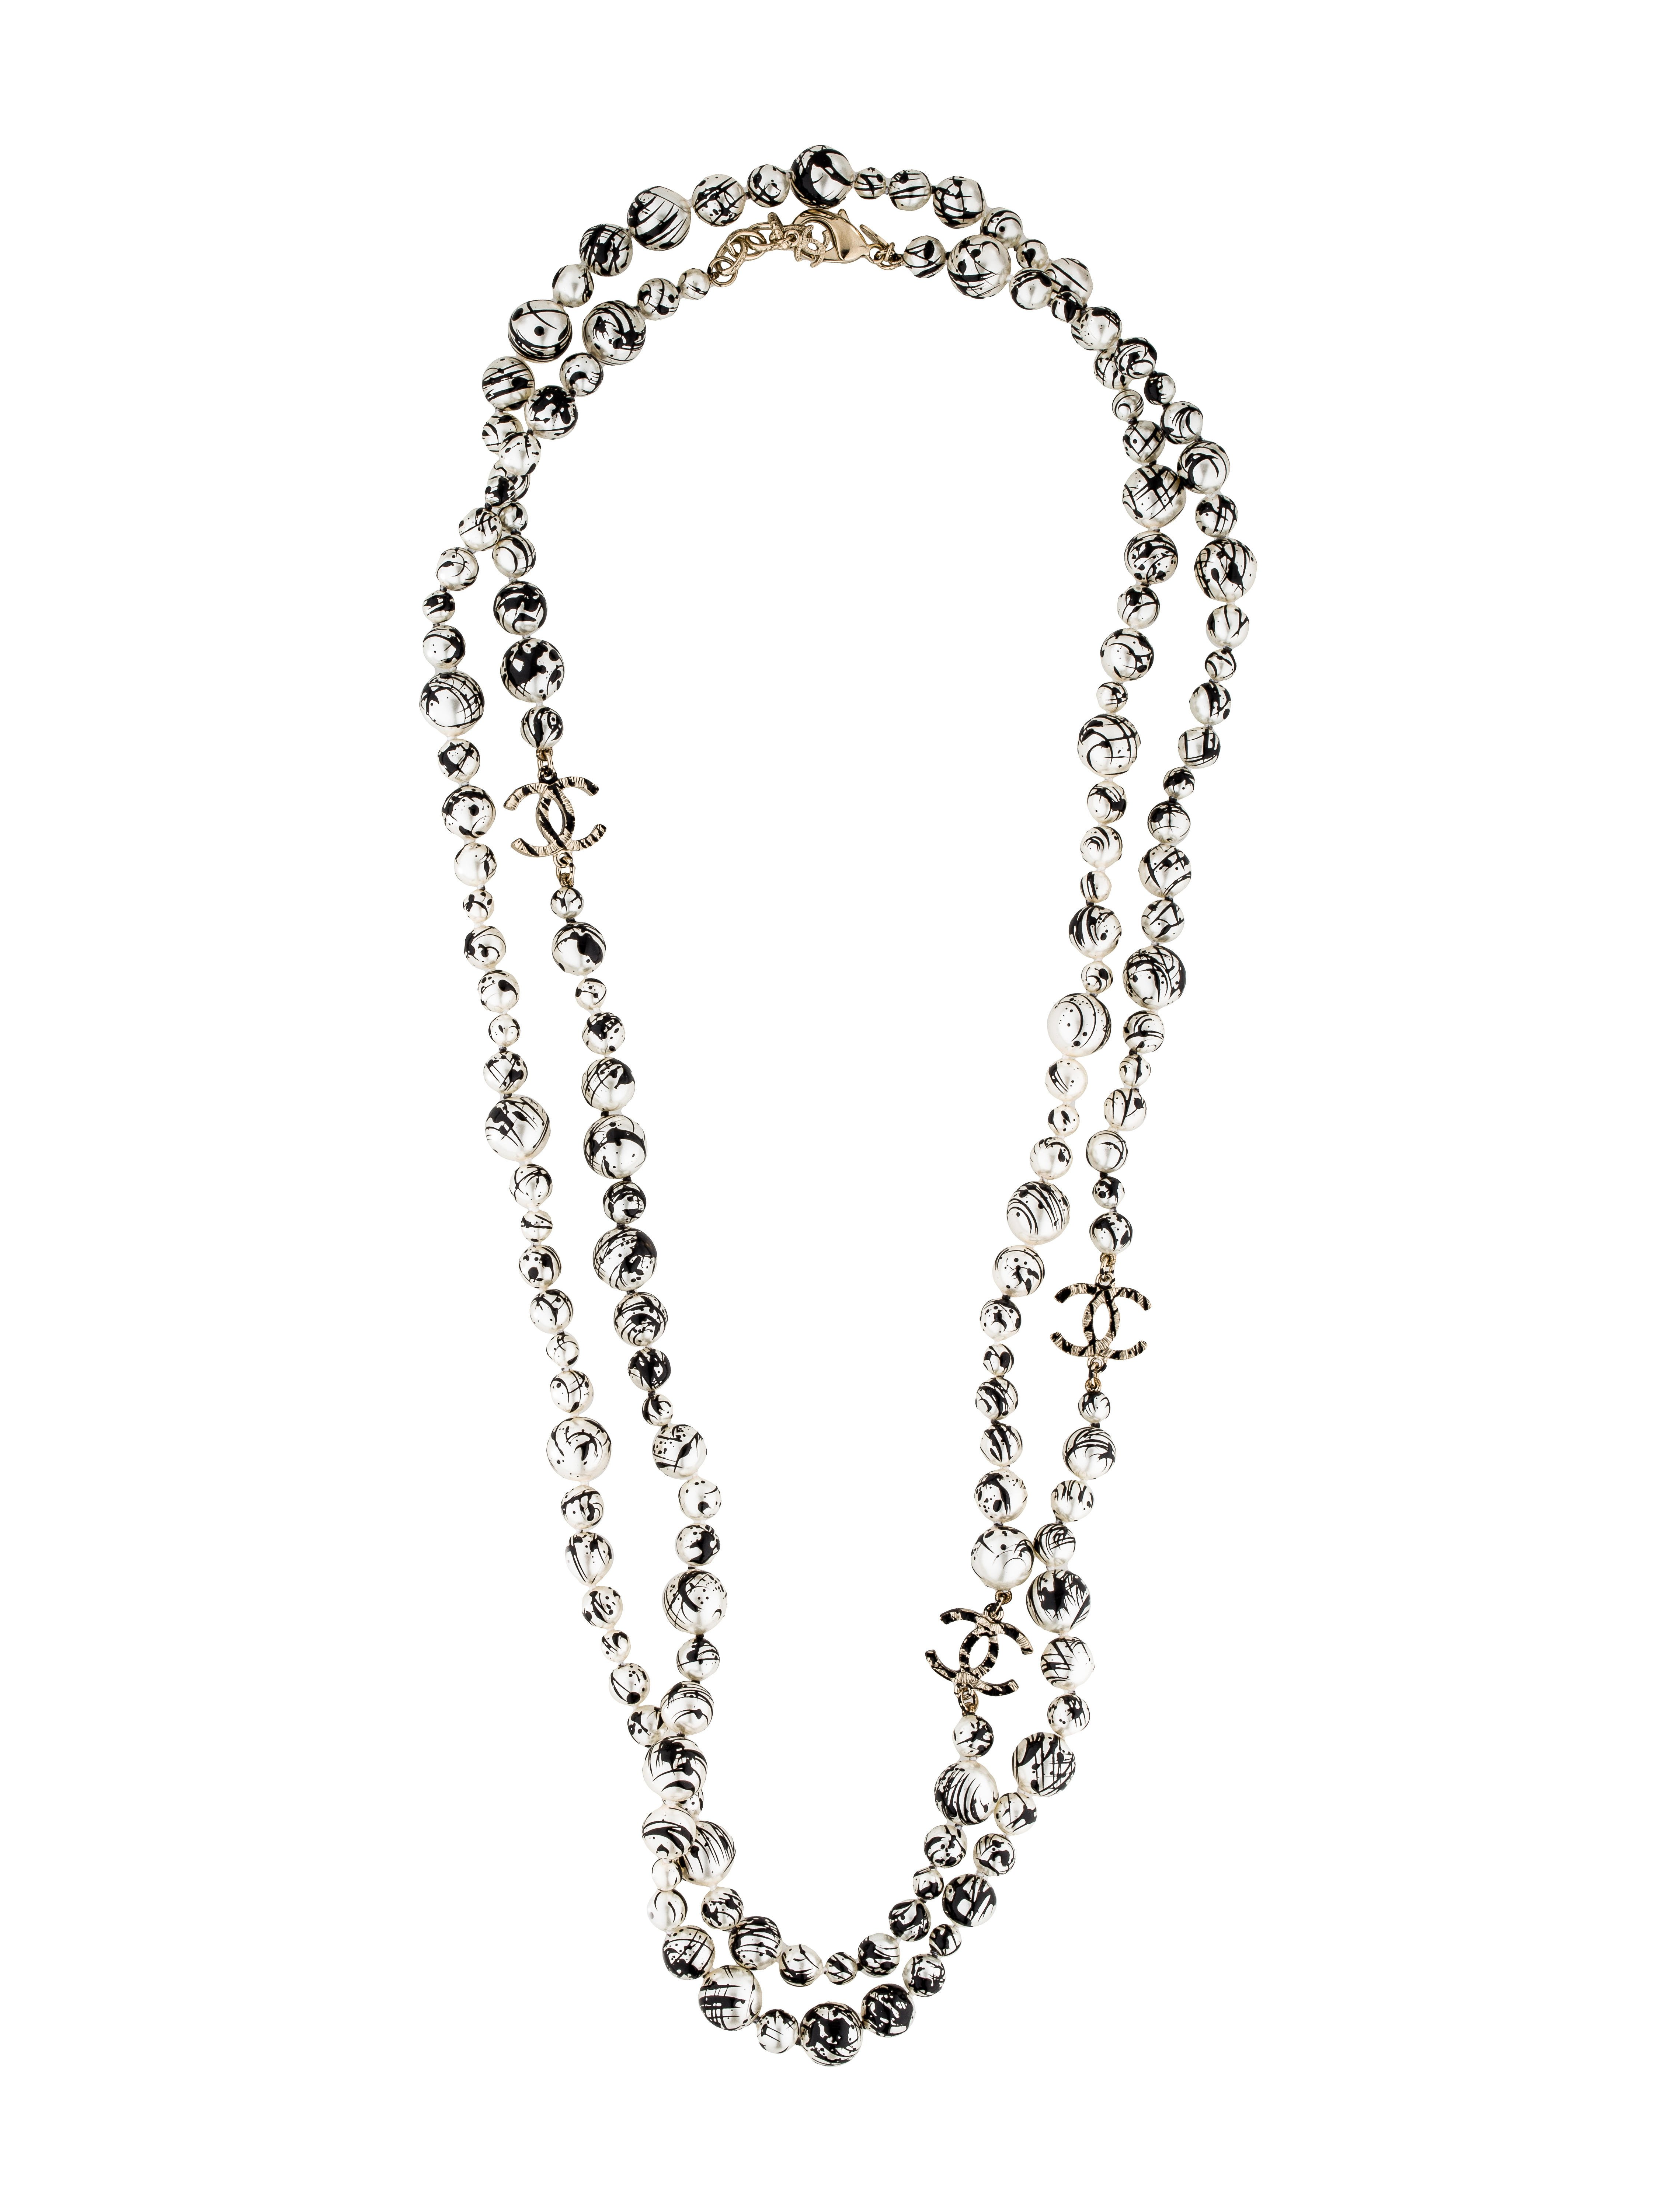 4549x6002 Chanel Paint Splatter Pearl Strand Necklace